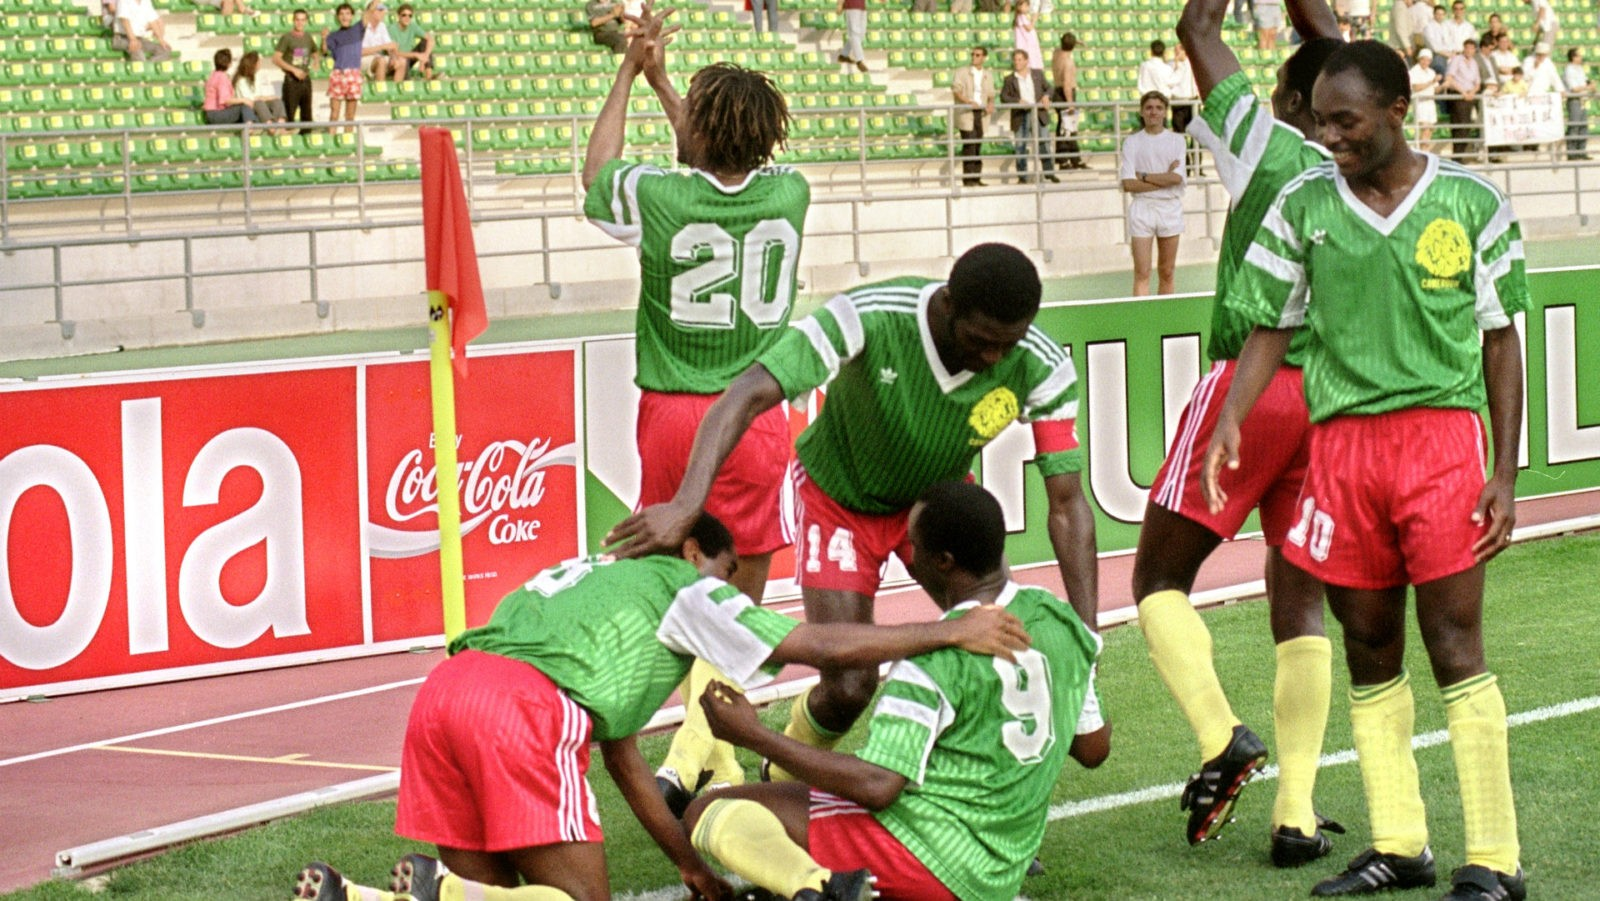 cameroon's-world-cup-qualifying-group-confirmed